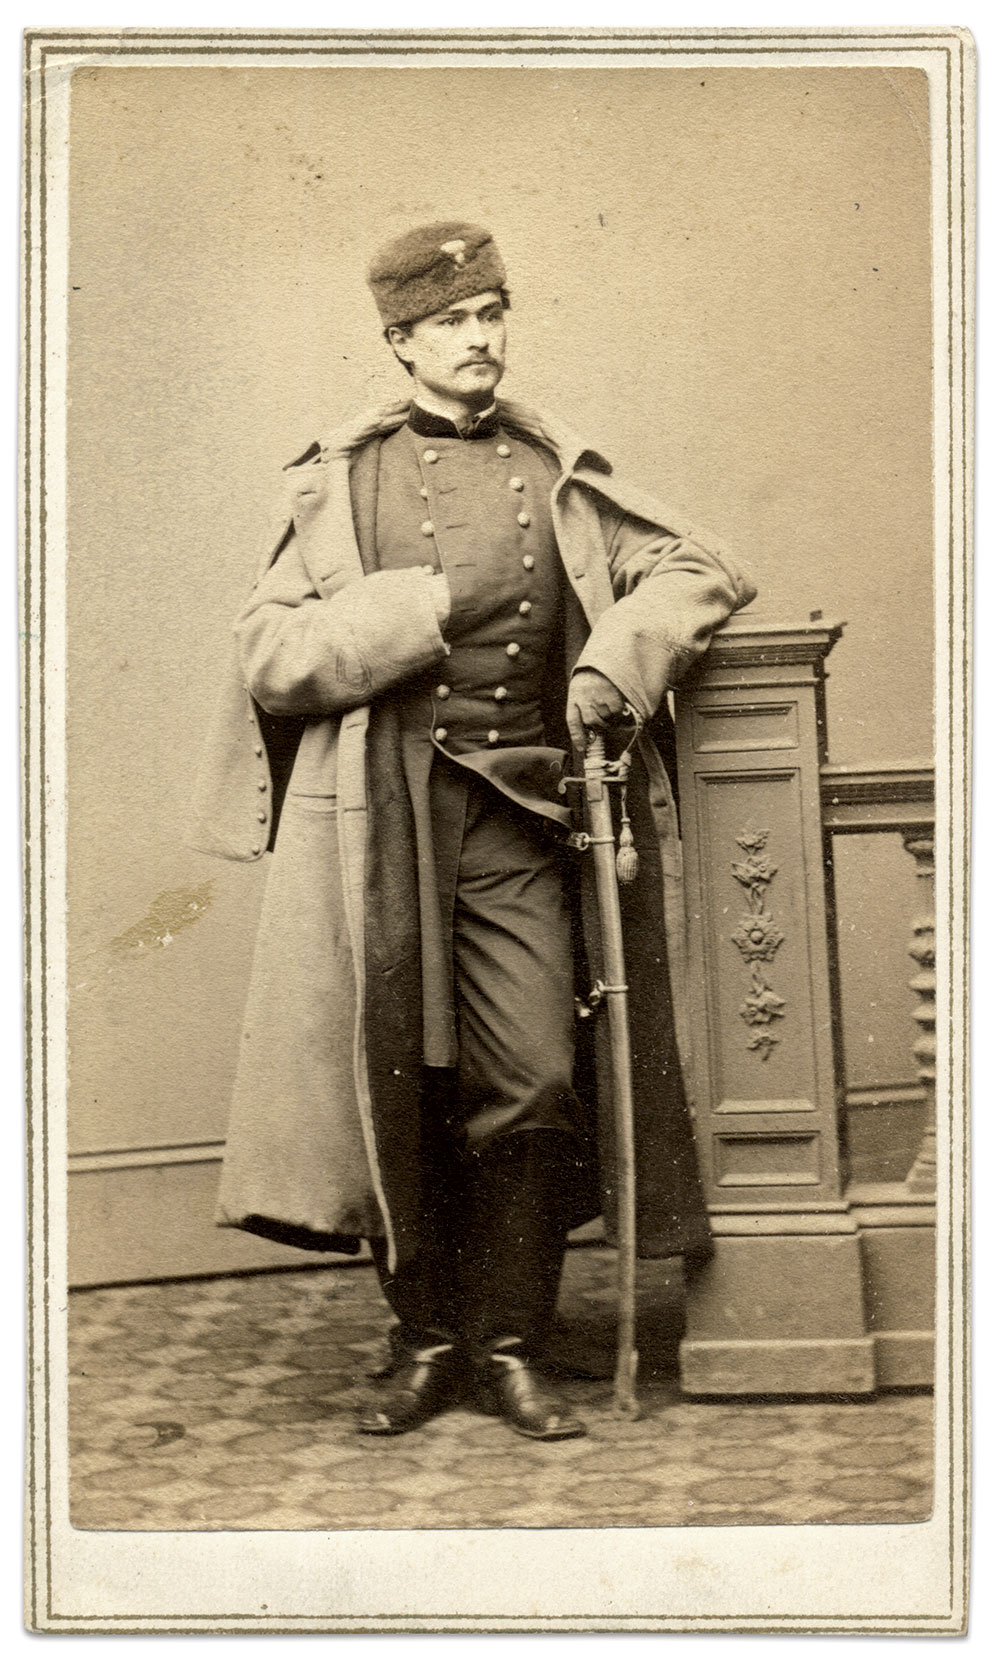 Hubert Anton Casimir Dilger of the 1st Ohio Light Artillery, dated Feb. 23, 1864, on the back of the mount. He poses here without his trademark leather breeches, in favor of the regulation uniform of a major, a rank he earned by brevet. Carte de visite by Charles D. Fredricks & Co. of New York City. Rick Carlile Collection.